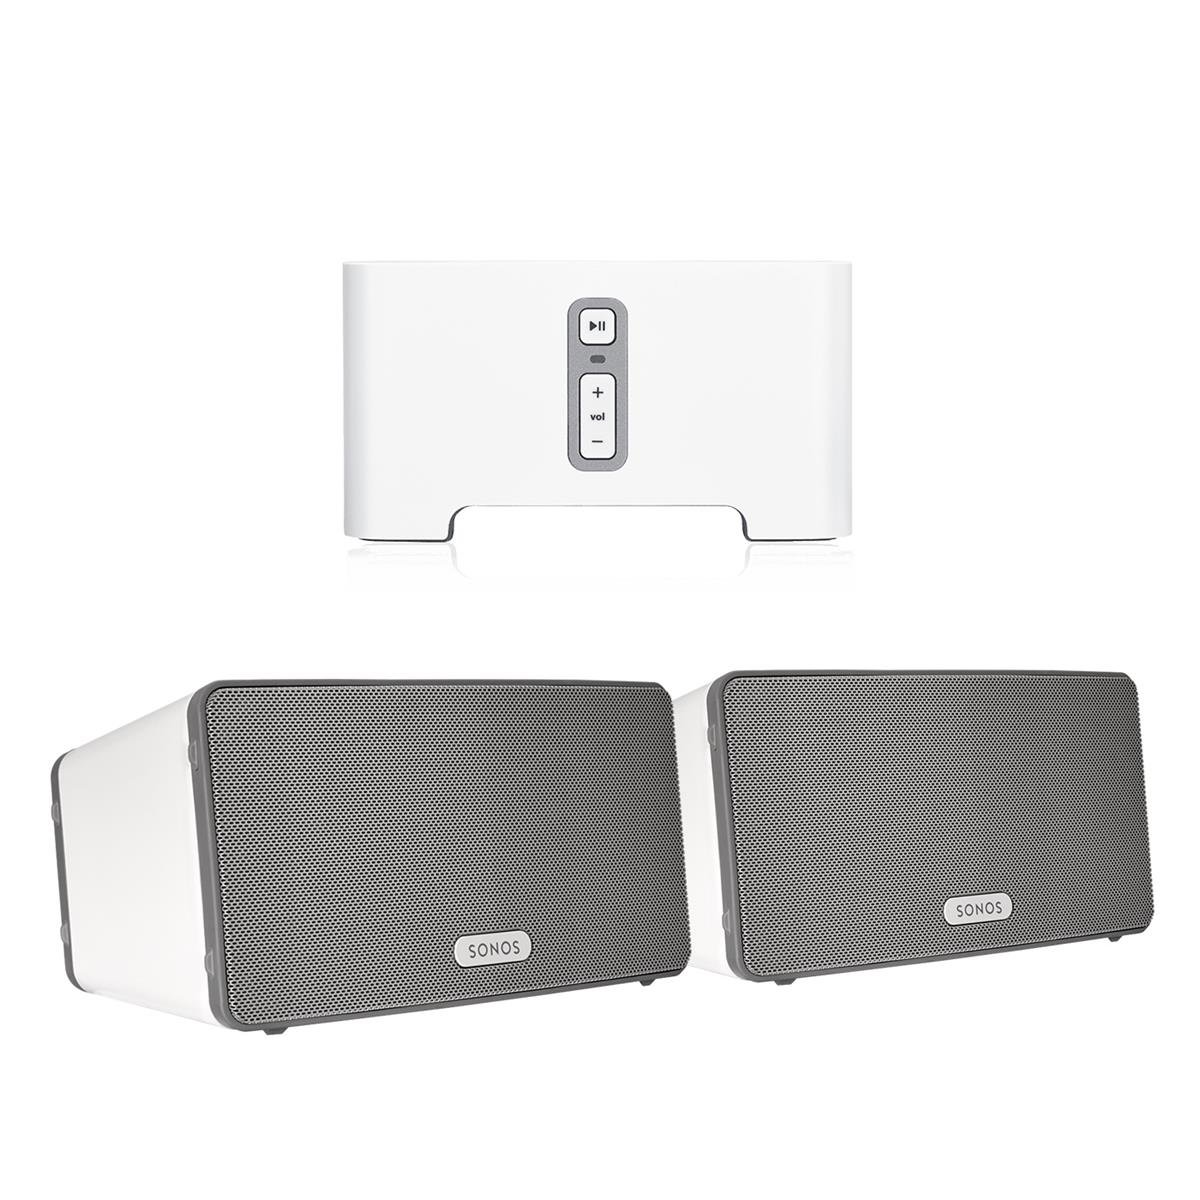 Sonos CONNECT Wireless Receiver for Streaming Music Bundle & Sonos PLAY:3 Wireless Speaker, Pair - White by Sonos